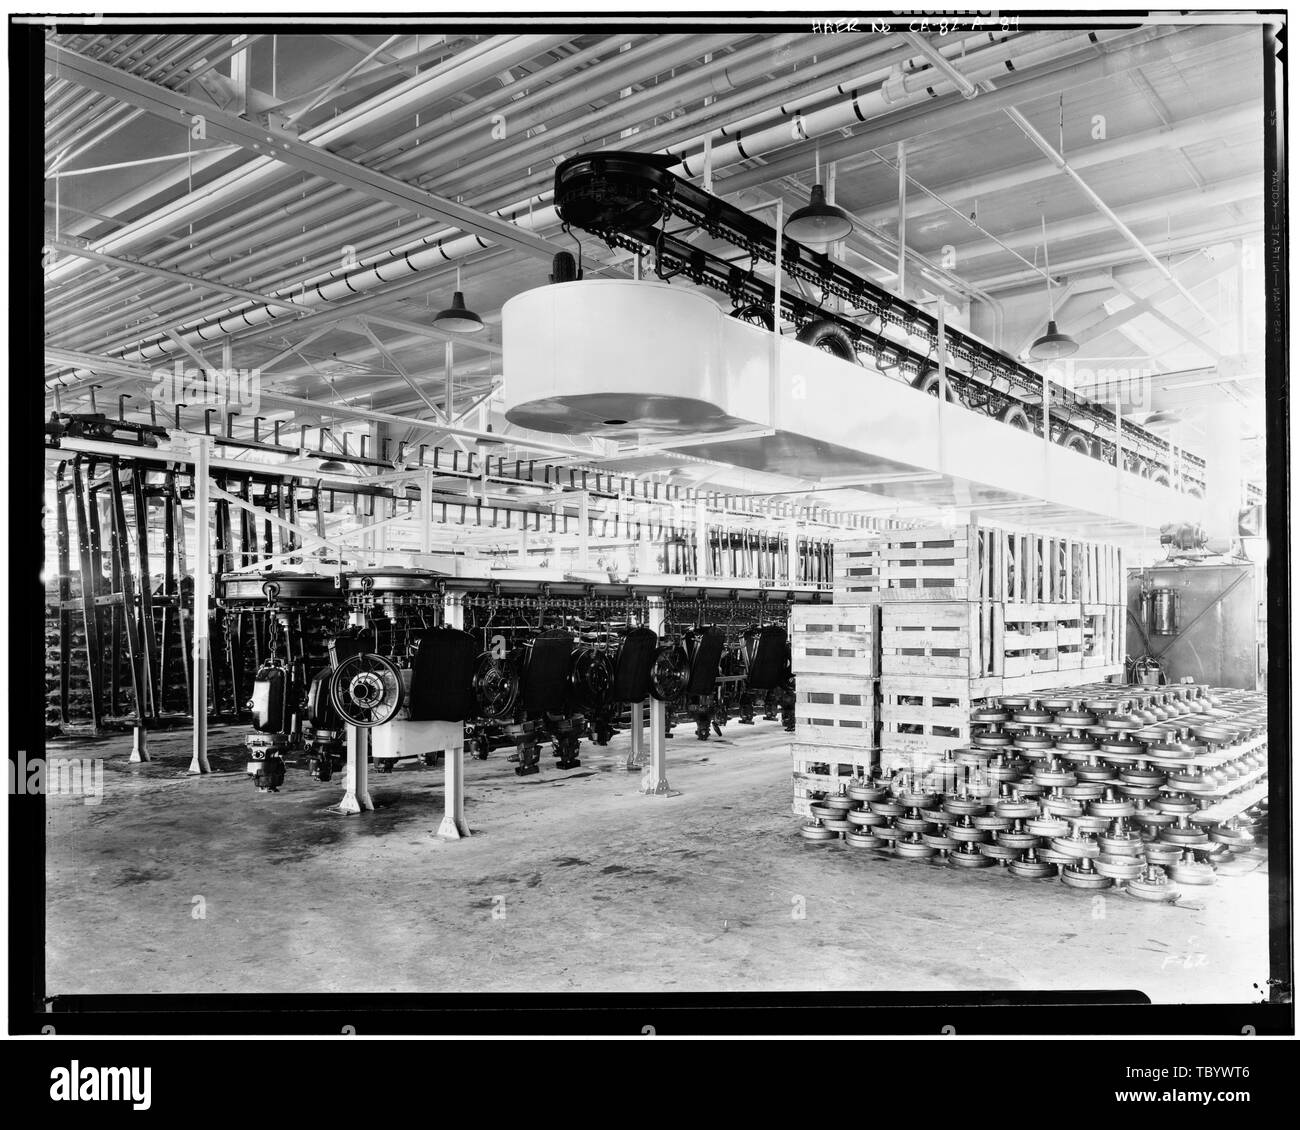 Neg. Nr. F 62, Apr 13, 1930, INTERIORASSEMBLY GEBÄUDE, RAHMEN UND MOTOR LAGERUNG TRANSPORTBAND Ford Motor Company Long Beach Montagewerk, Assembly Building, 700 Henry Ford Avenue, Long Beach, Los Angeles County, CA Stockbild